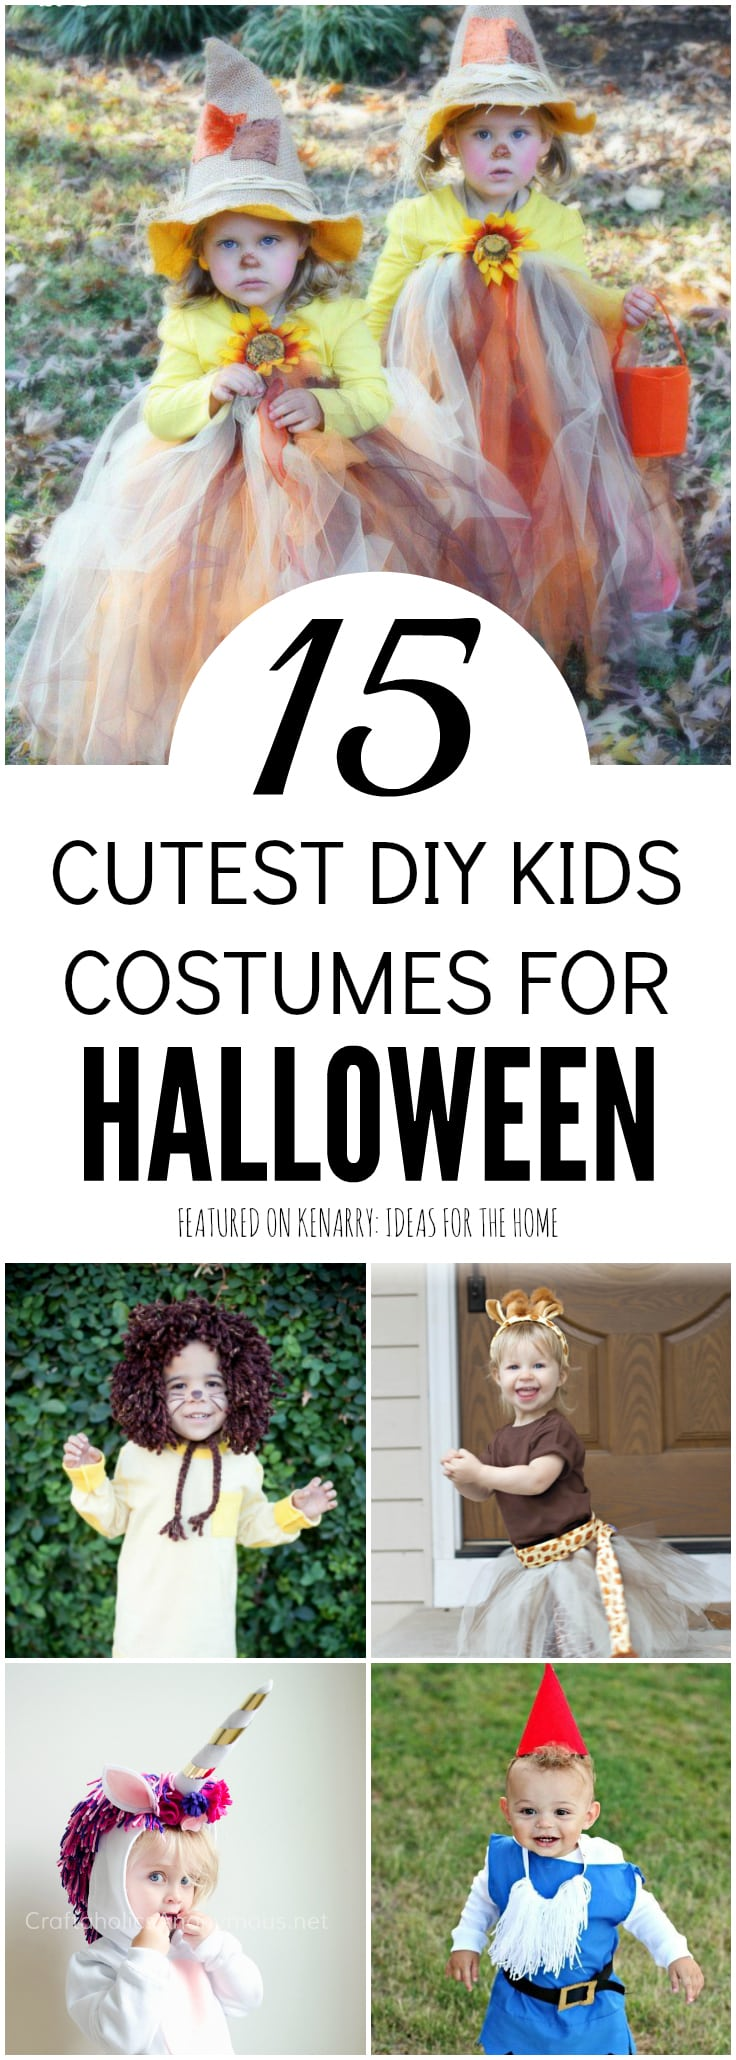 Create an adorable Halloween costume for your child this year. These 15 DIY kids Halloween costumes are the cutest ideas to wear for trick-or-treating on Halloween night.